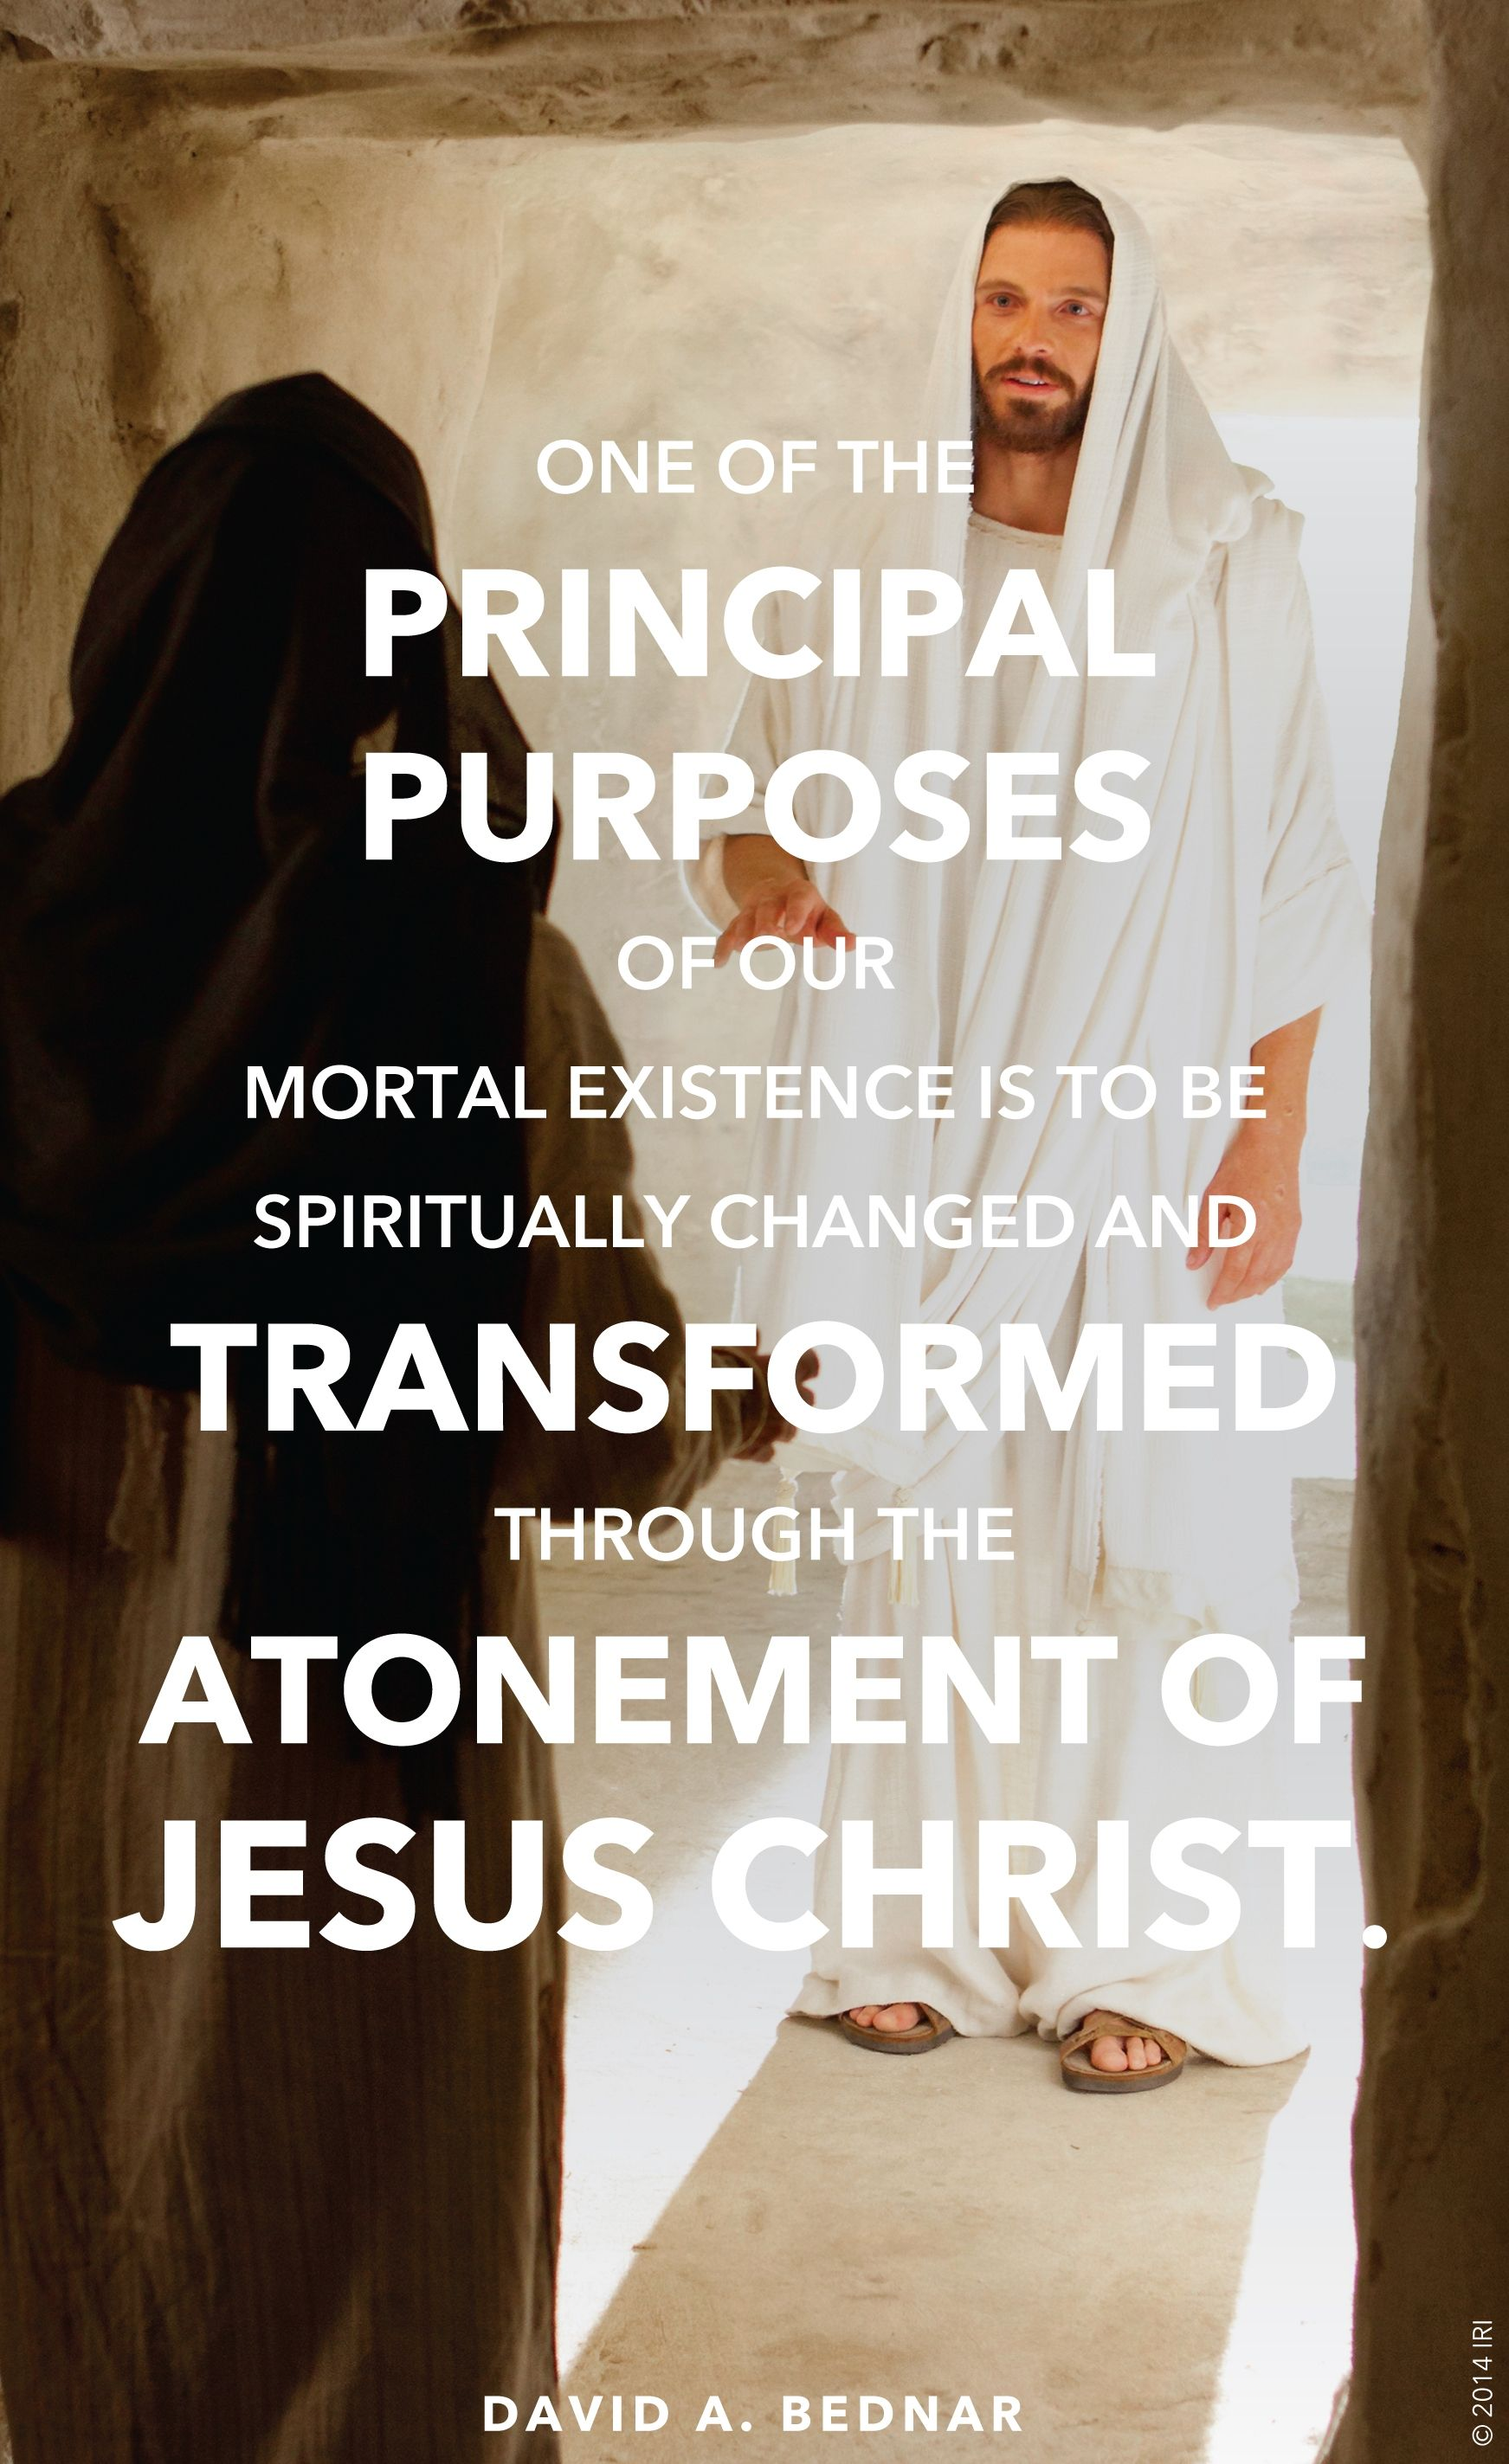 """An image of Christ and Mary at the tomb, combined with a quote by Elder David A. Bednar: """"One of the … purposes of our mortal existence is to be spiritually changed … through the Atonement."""""""